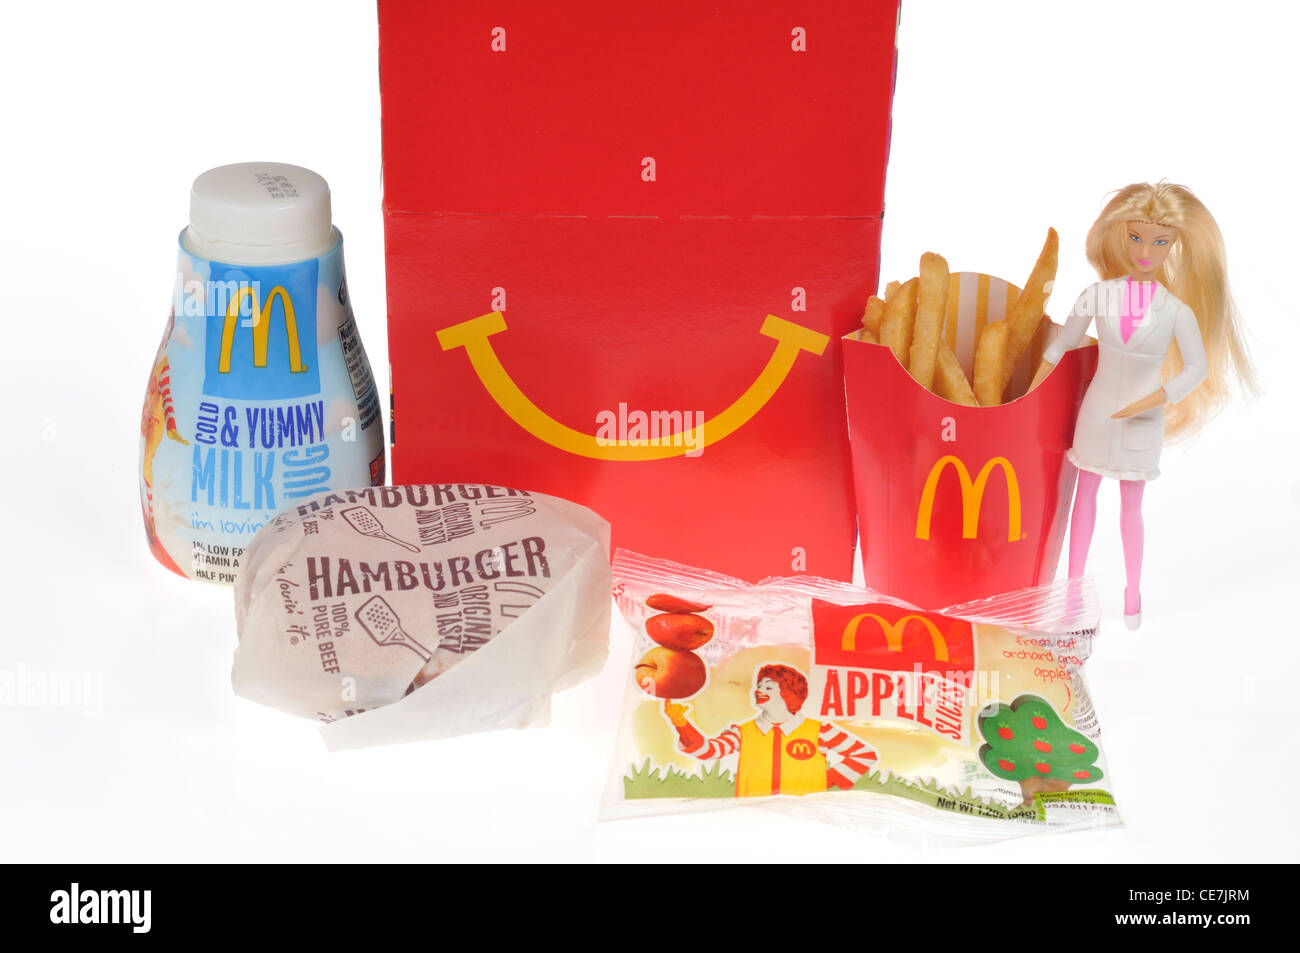 McDoanld's Happy Meal with a hamburger, french fries, milk and apple dippers and a Barbie doll toy on white - Stock Image